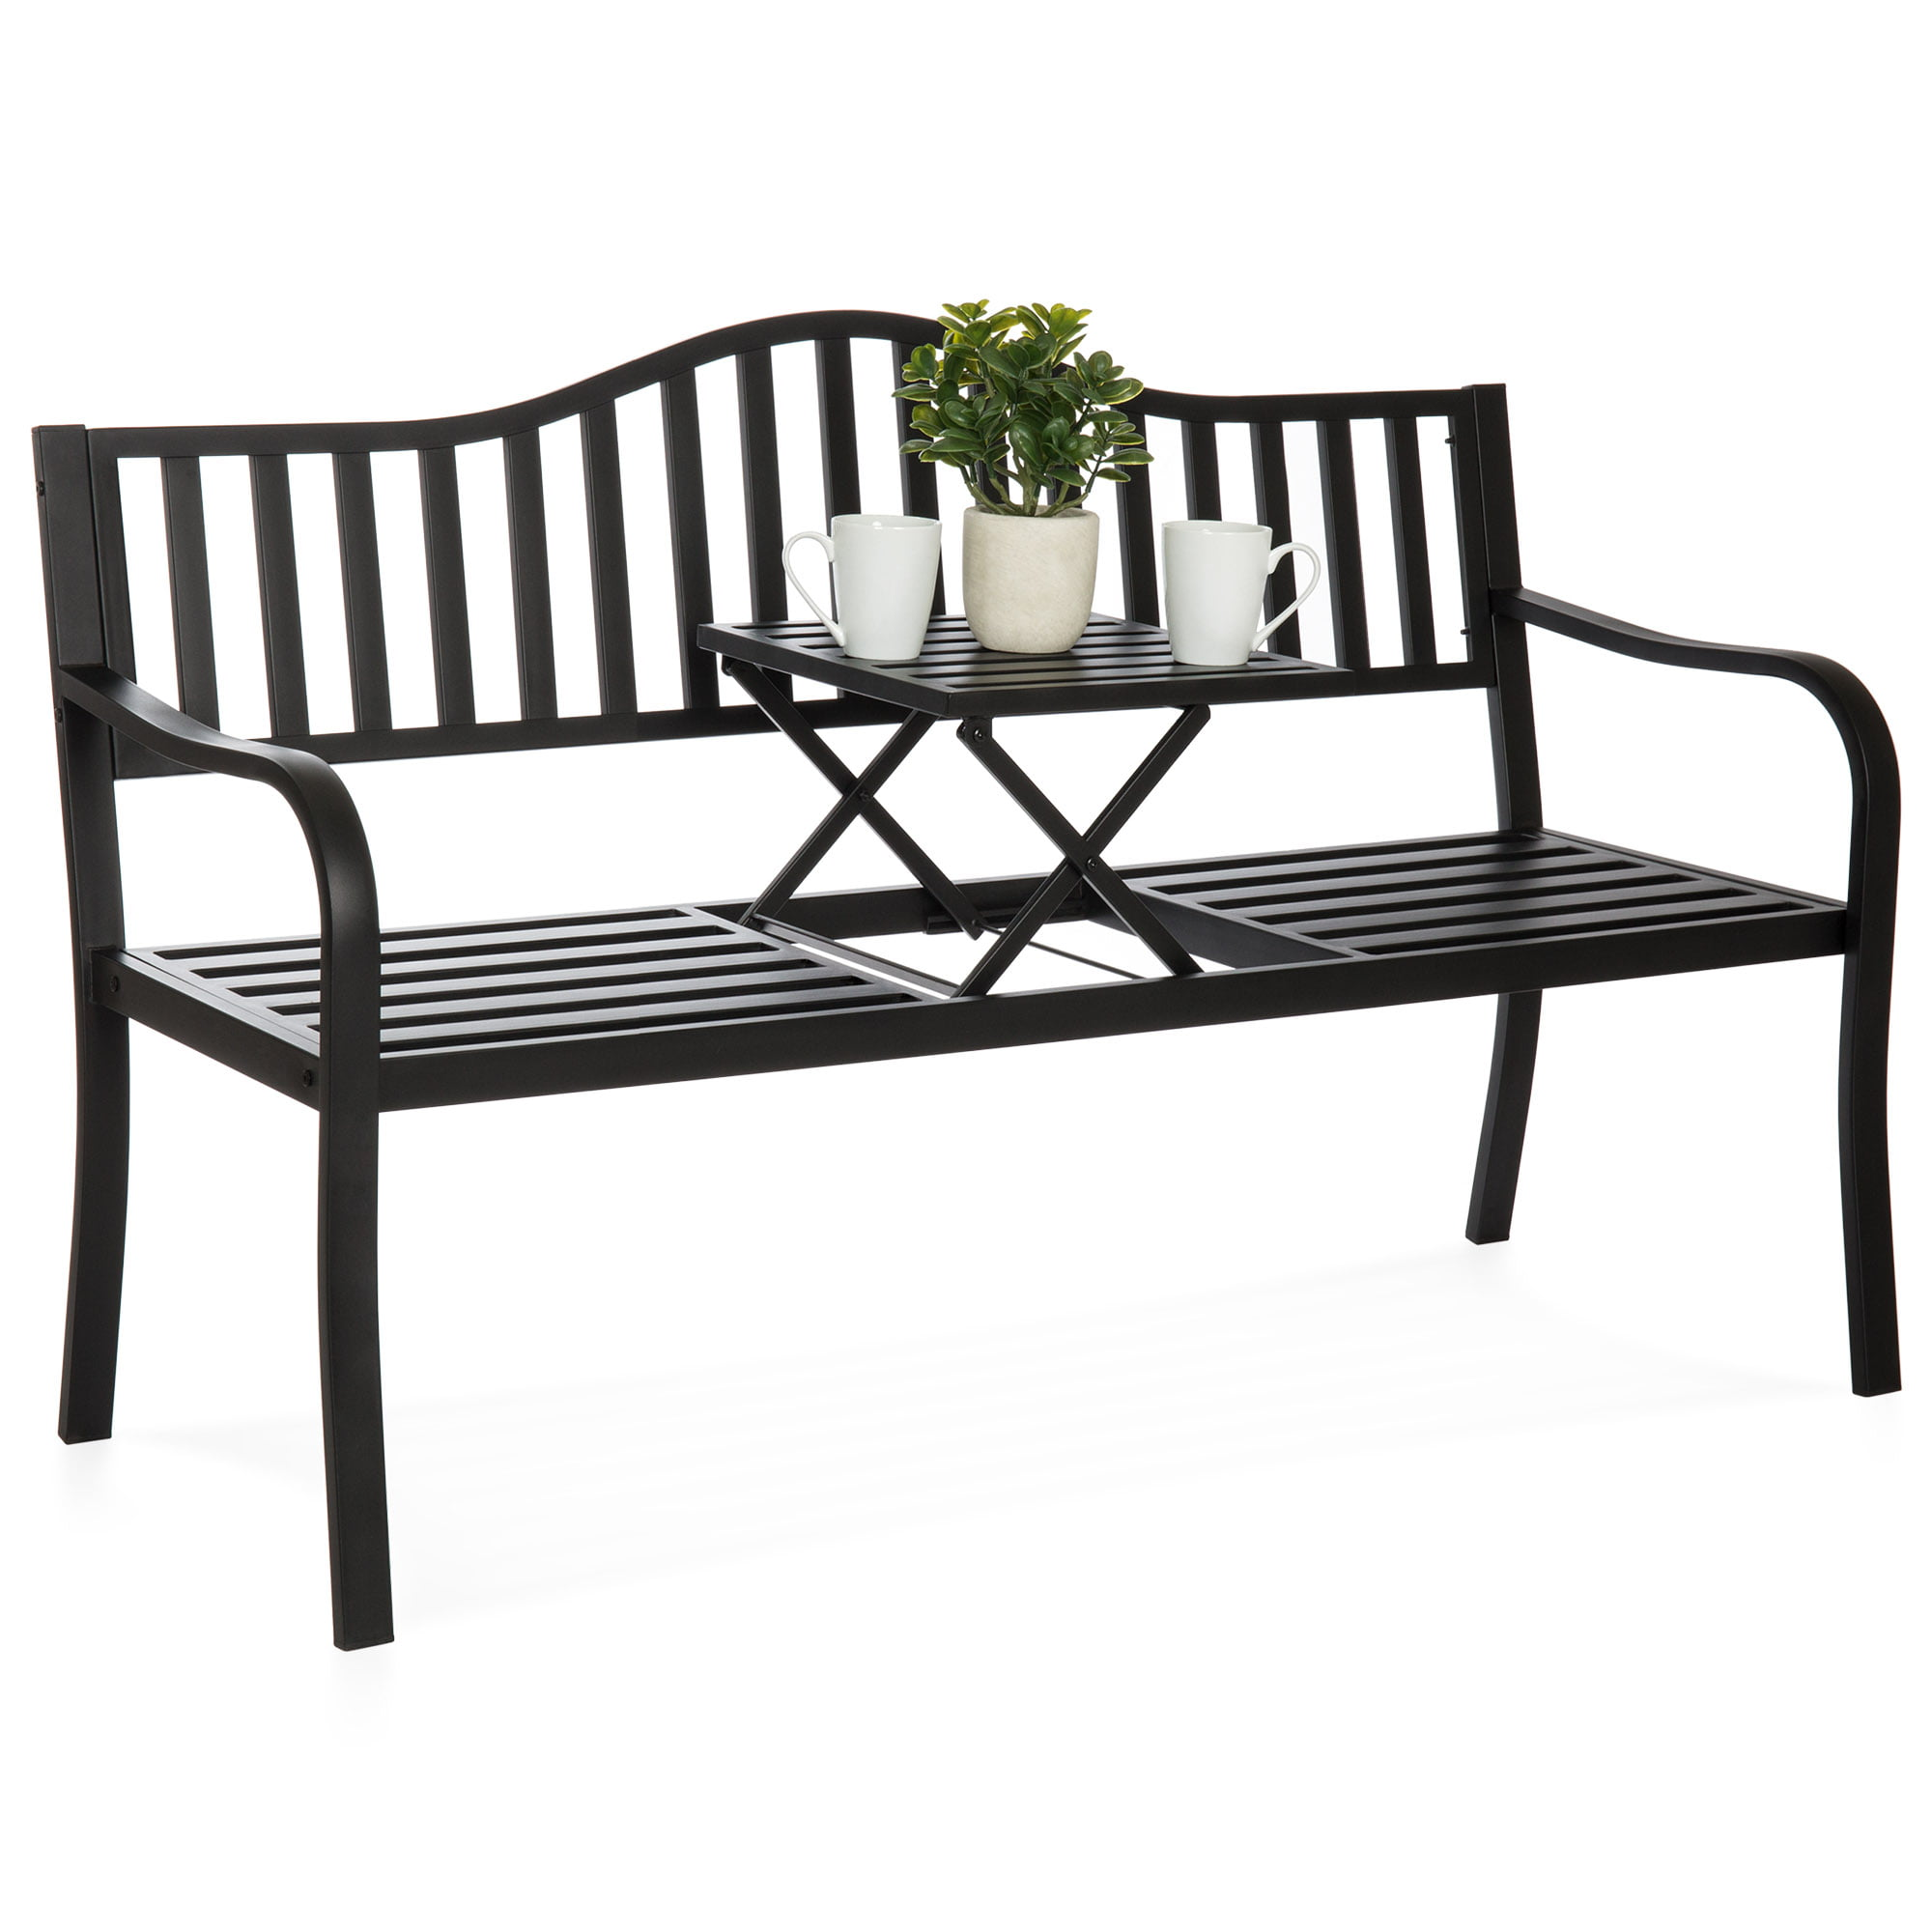 Best Choice Products Cast Iron Patio Garden Double Bench ...